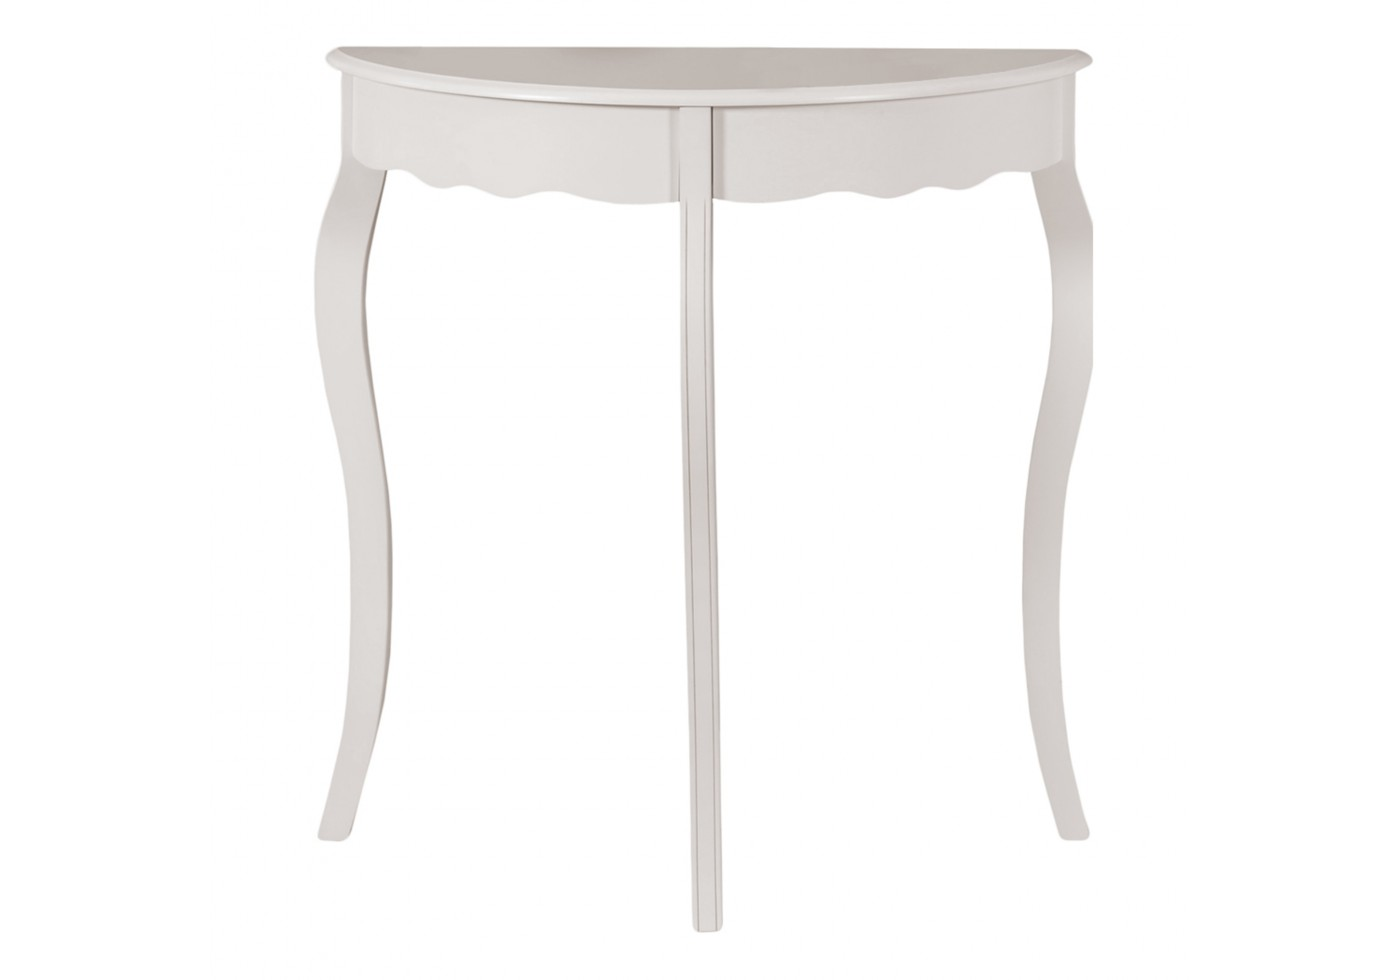 accent table antique white hall console bedroom end lamps cement top baby changing pad wine stoppers target black piece living room set cherry furniture vintage corner rack garden